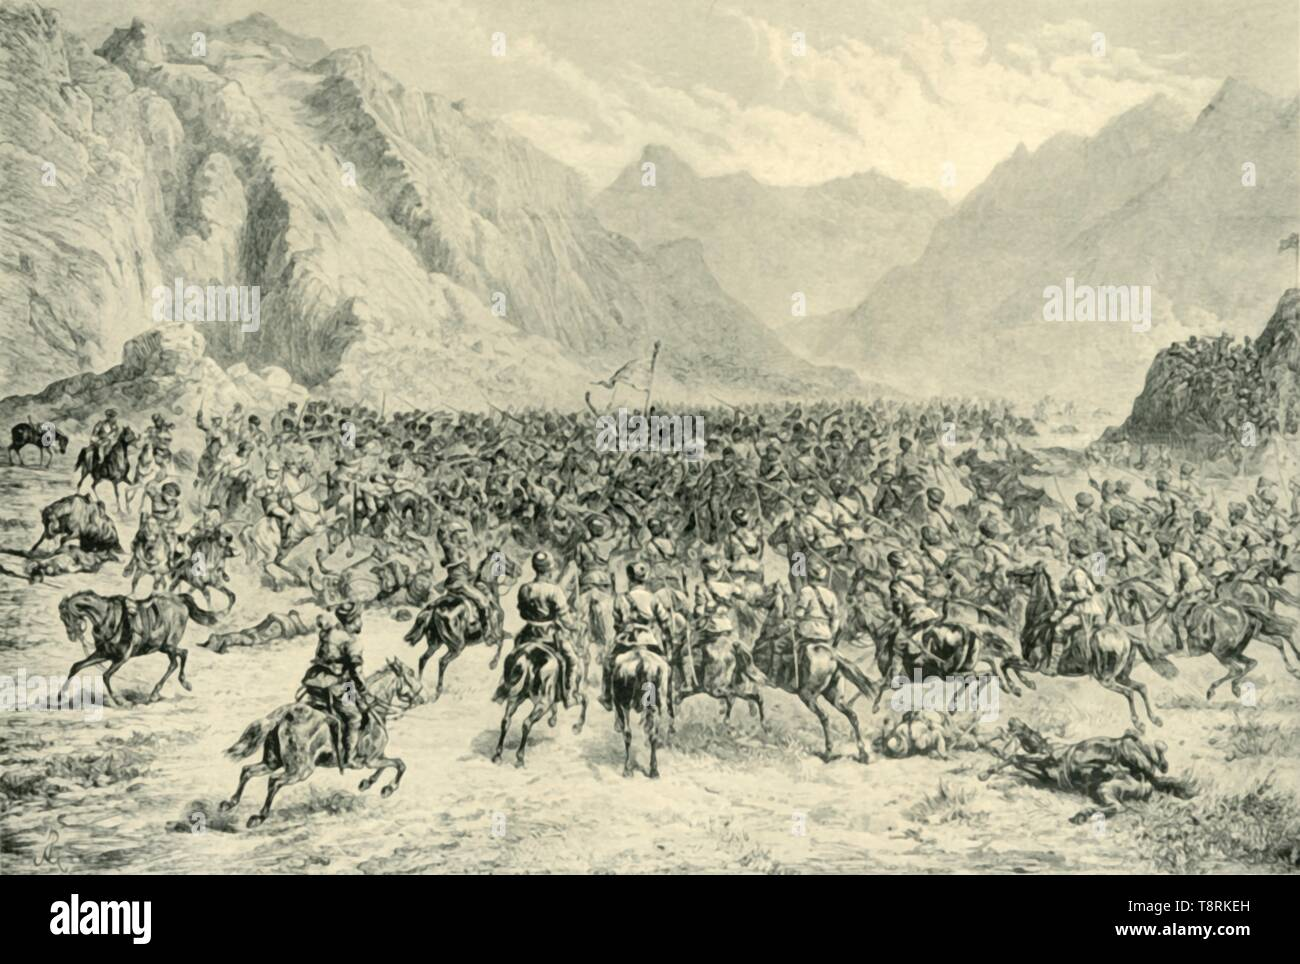 """'Charge of Punjab Cavalry in the Second Action Near Charasia, on 24th April 1880', (1901). Incident during the Second Afghan War: British and Indian troops fighting Afghan forces near Kabul, Afghanistan. From """"The Life and Deeds of Earl Roberts, Vol. III. - To The End of Lord Roberts's Indian Career"""", by J. Maclaren Cobban. [T. C. & E. C. Jack, Edinburgh, 1901] - Stock Image"""